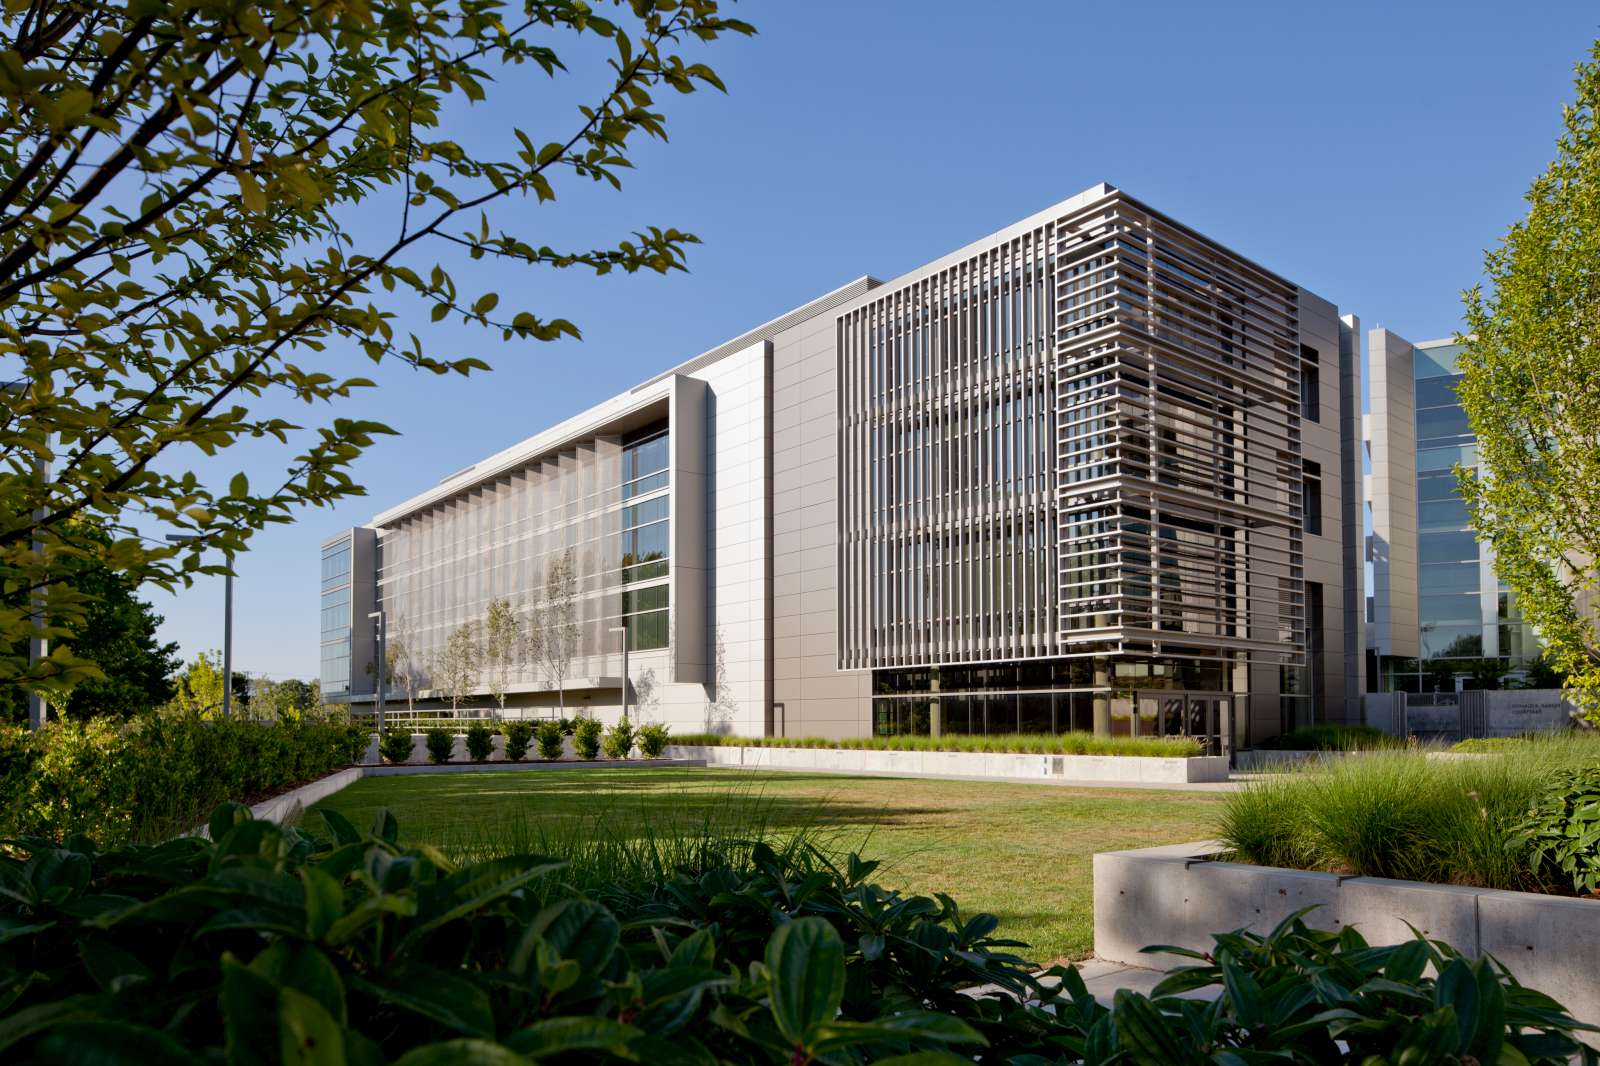 Cambridge Architectural Solar Shading Contributes To Leed